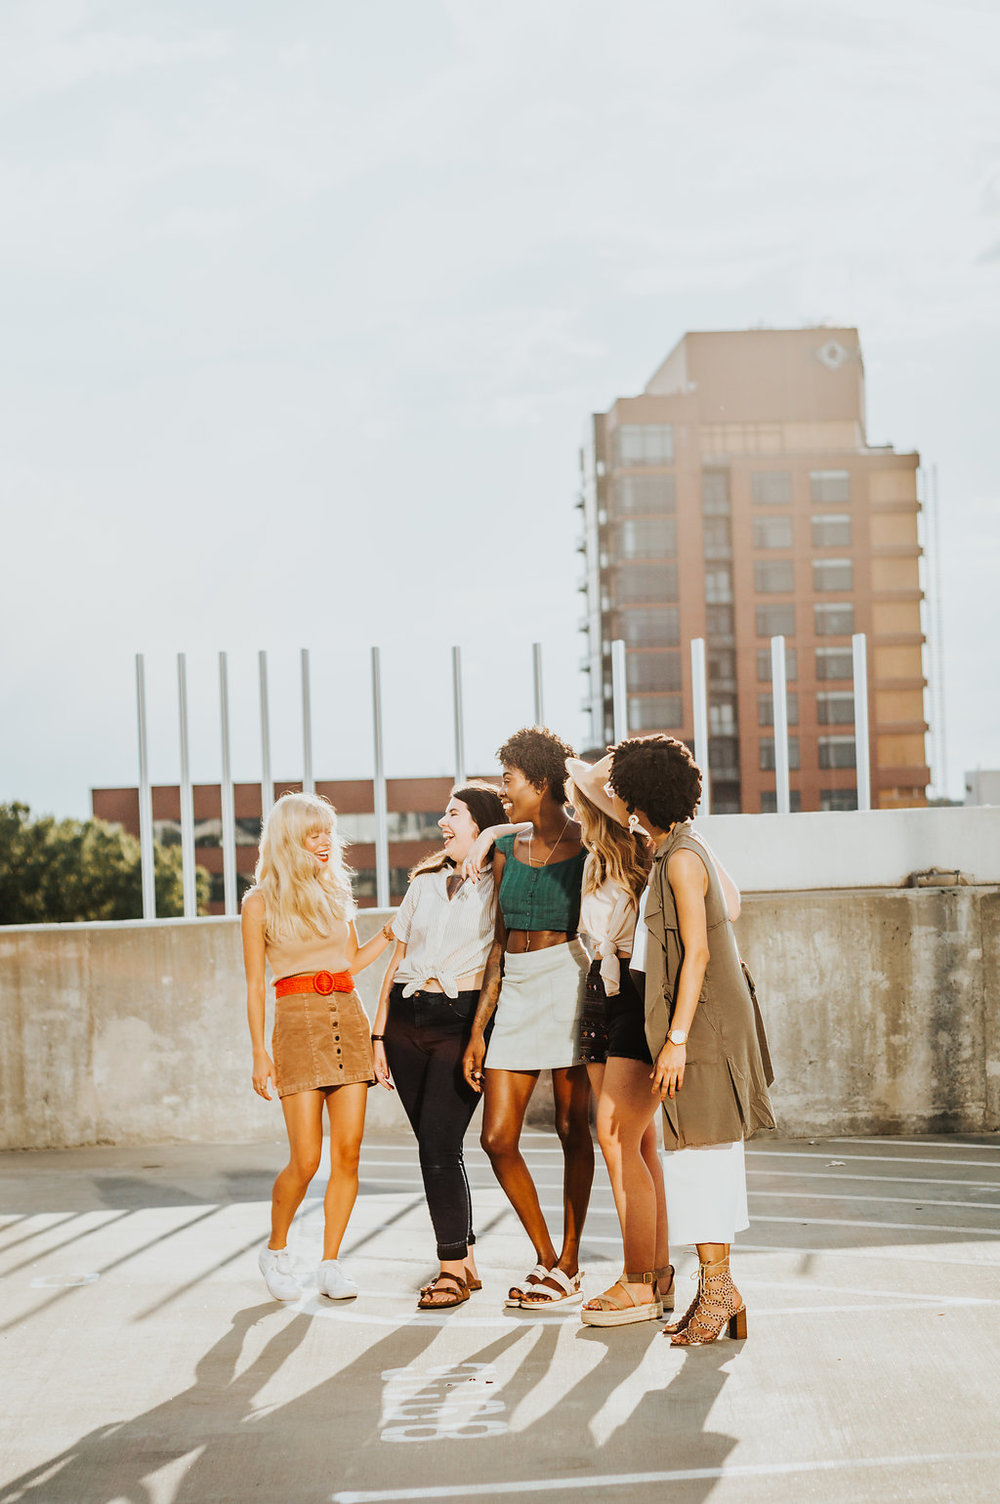 theauthenticwomancampaign-raleighnc-mikaylachristiansenphotography-92.jpg